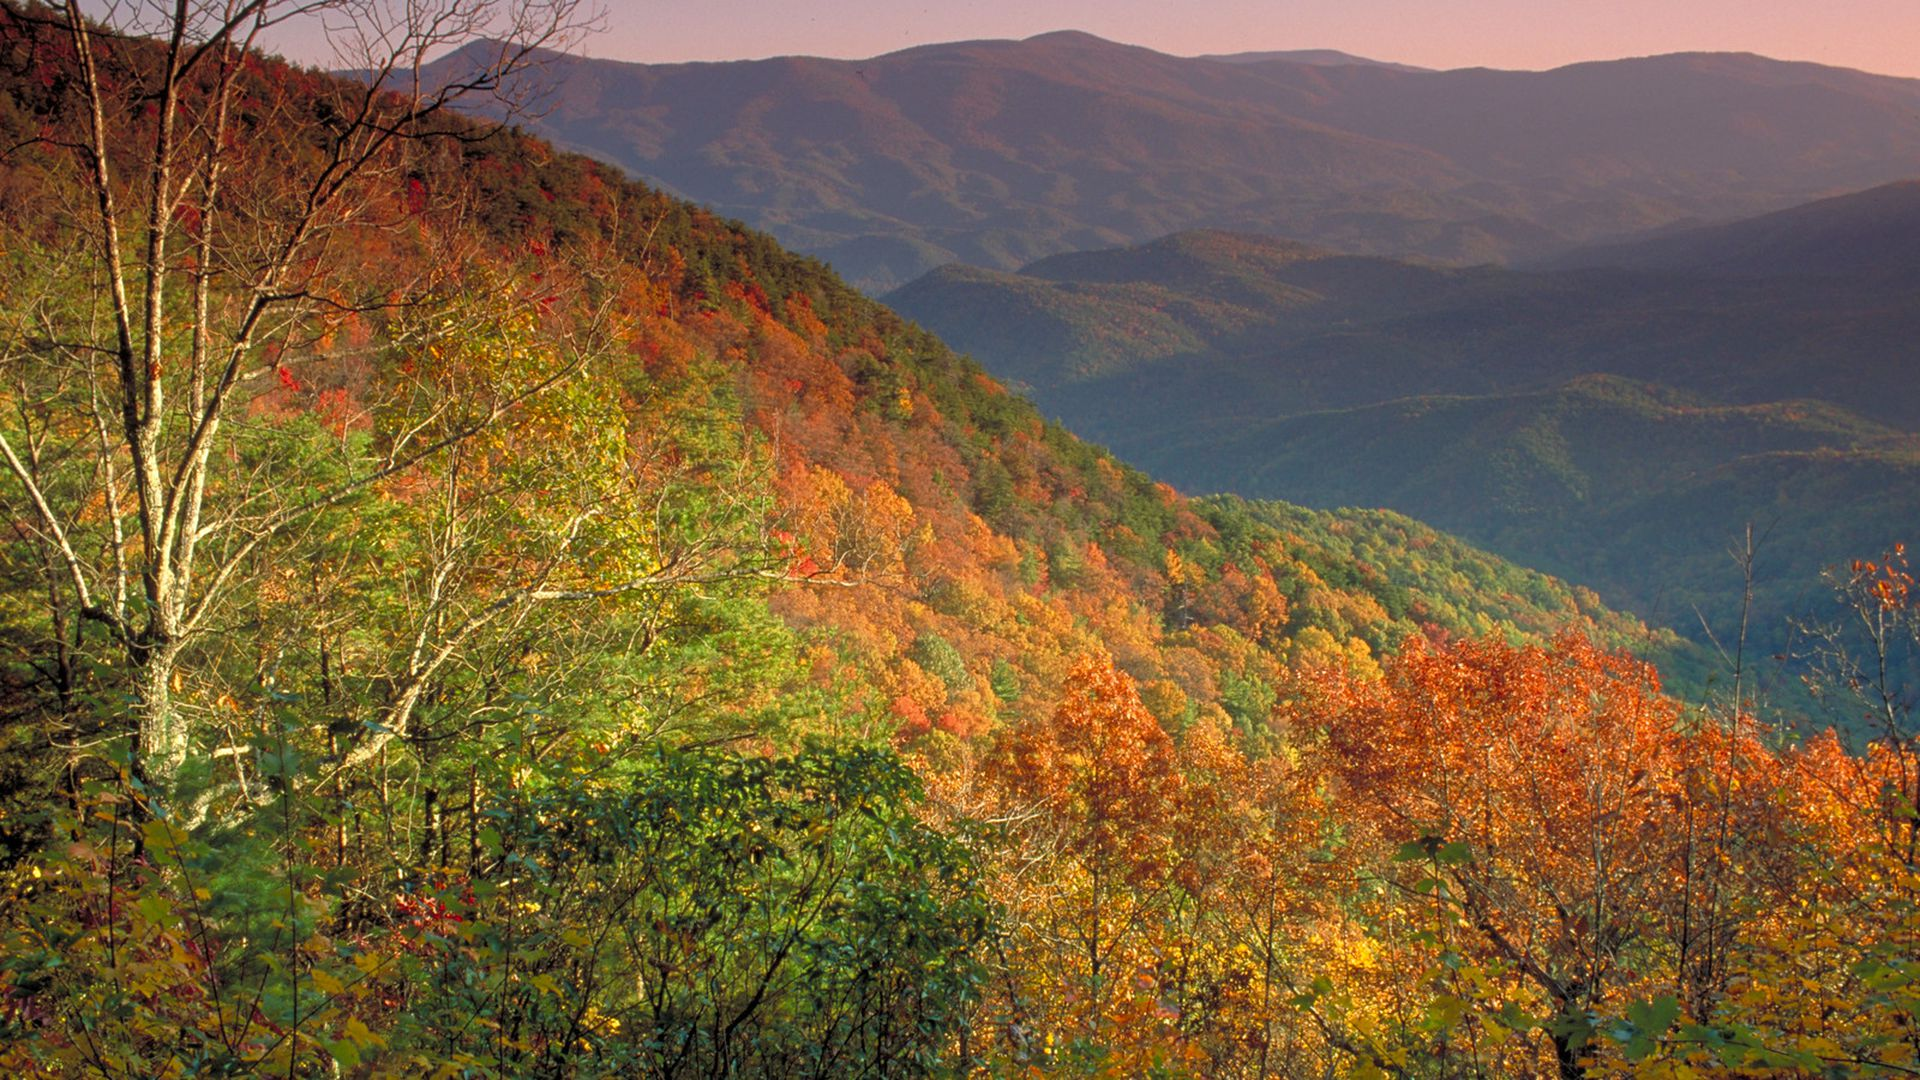 A view of Fort Mountain State Park in the autumn as green leaves change to red, amber, orange, and brown